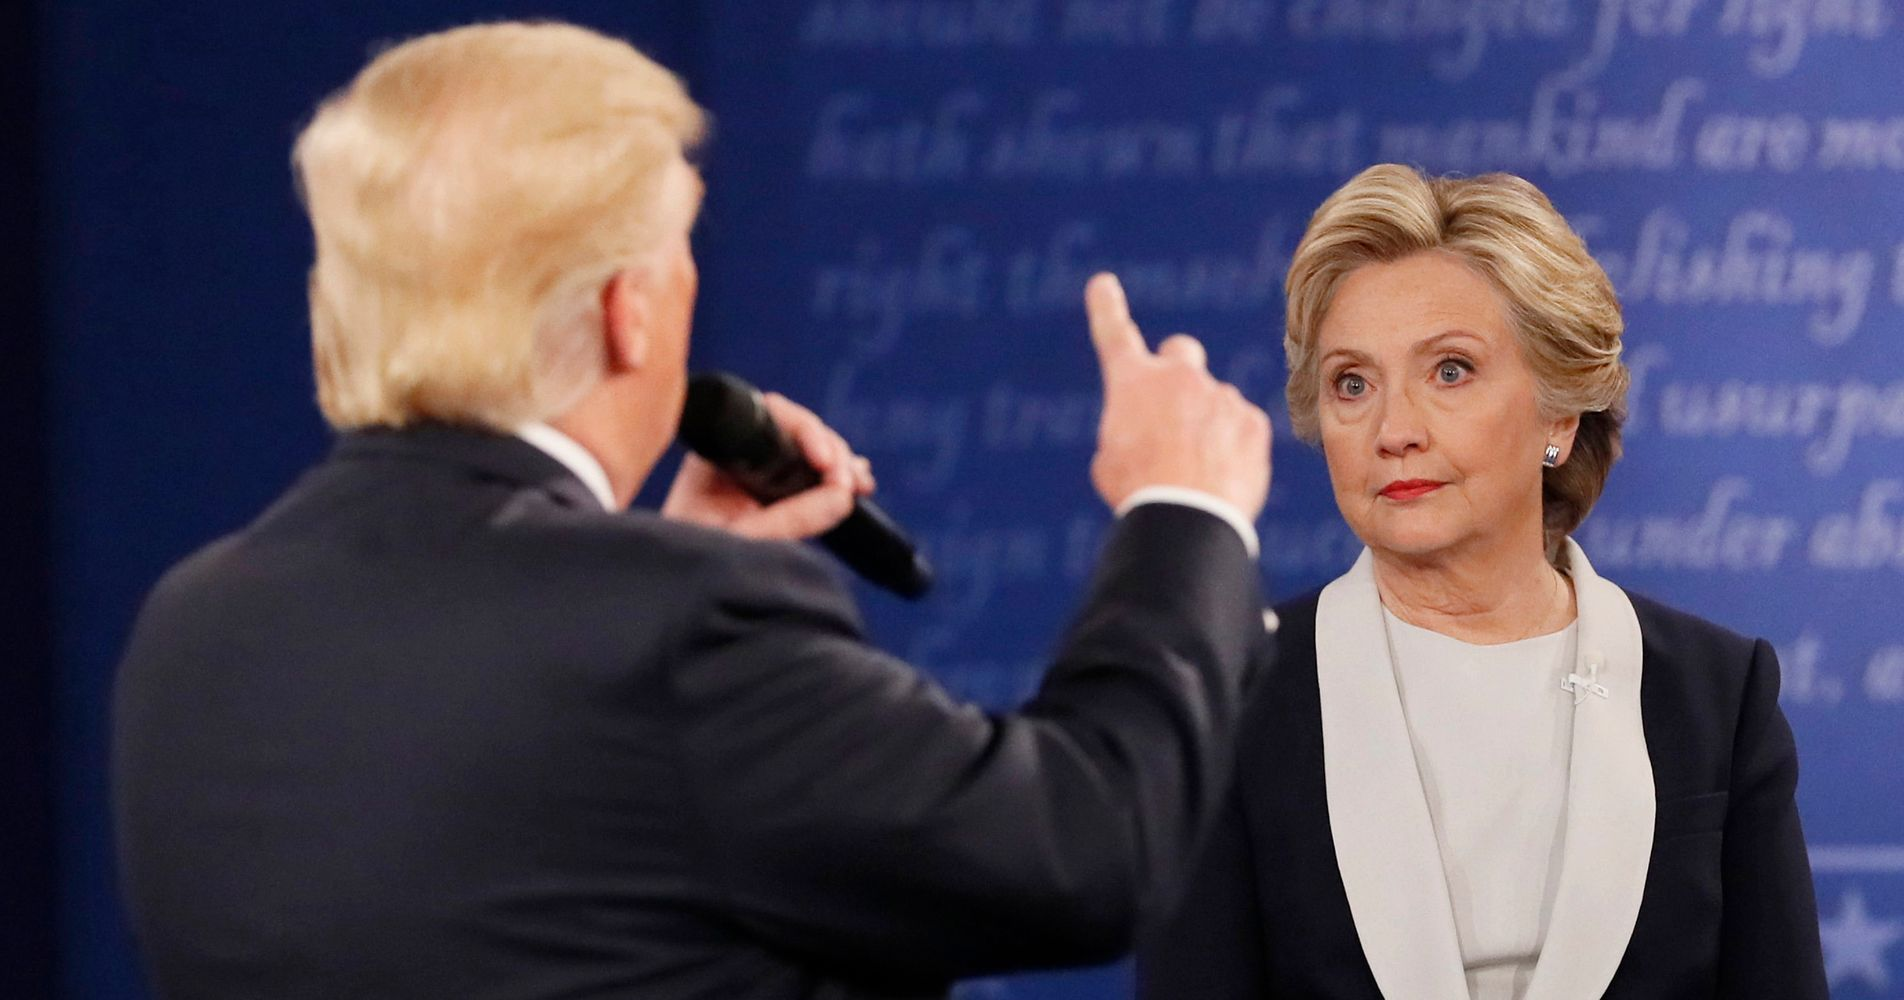 Americans Give Thumbs Down To Donald Trump's Debate ...